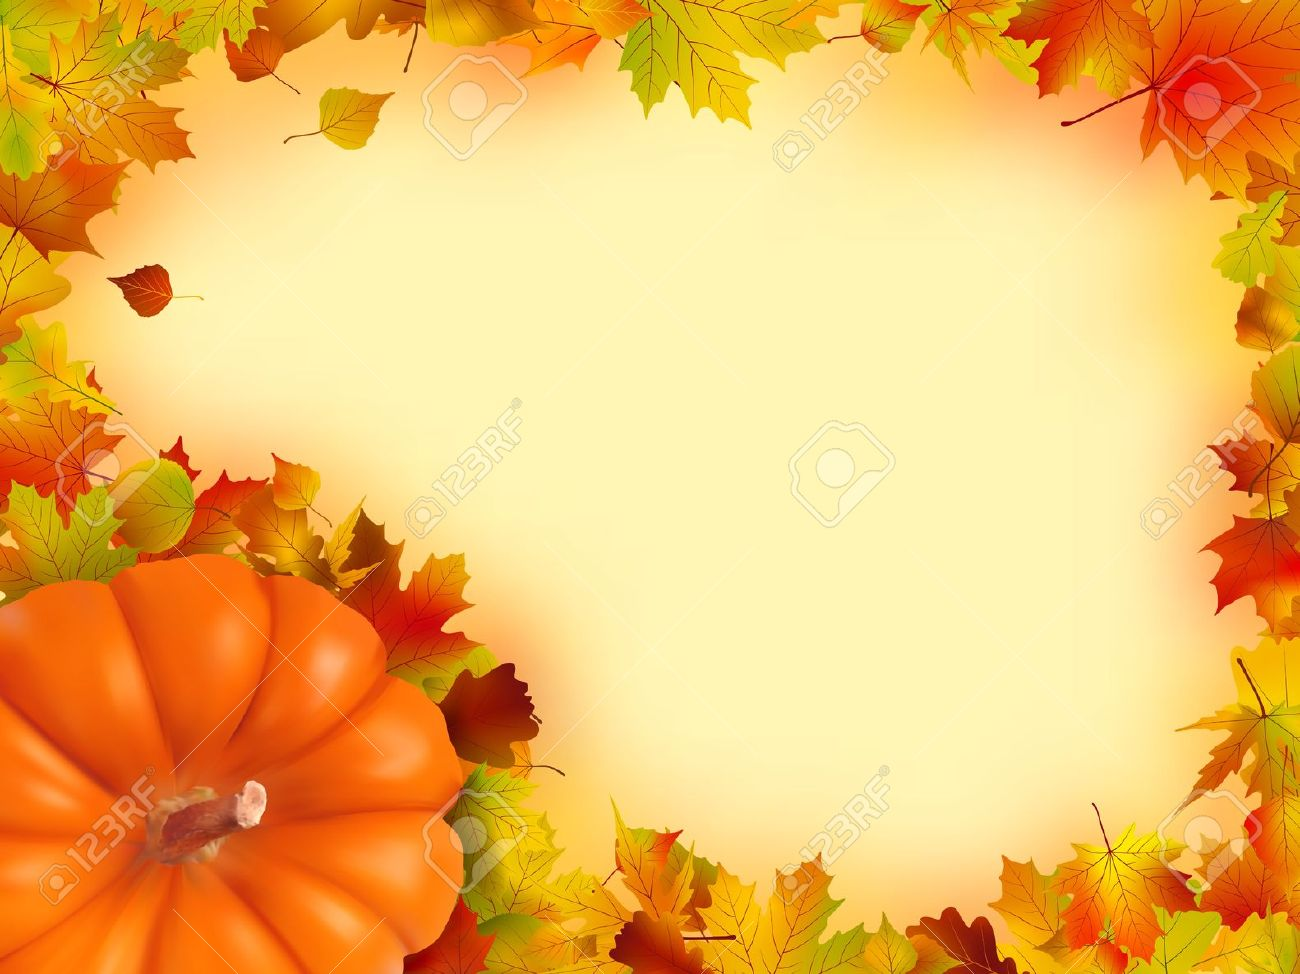 thanksgiving frame clipart - Clipground